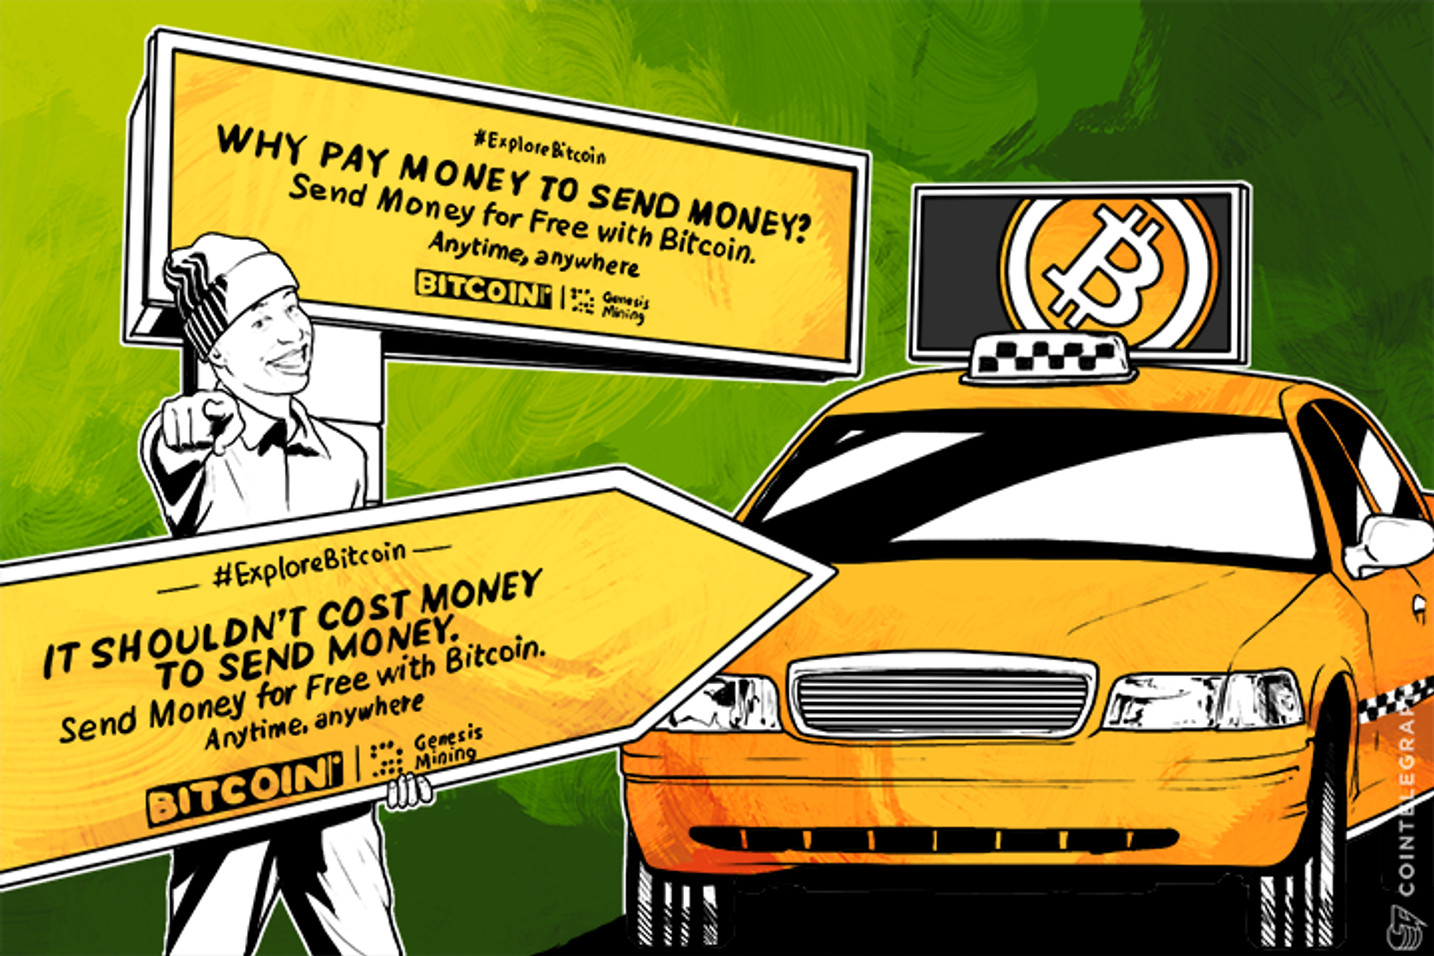 Bitcoin Awareness Campaign Launches Across Major U.S. Cities